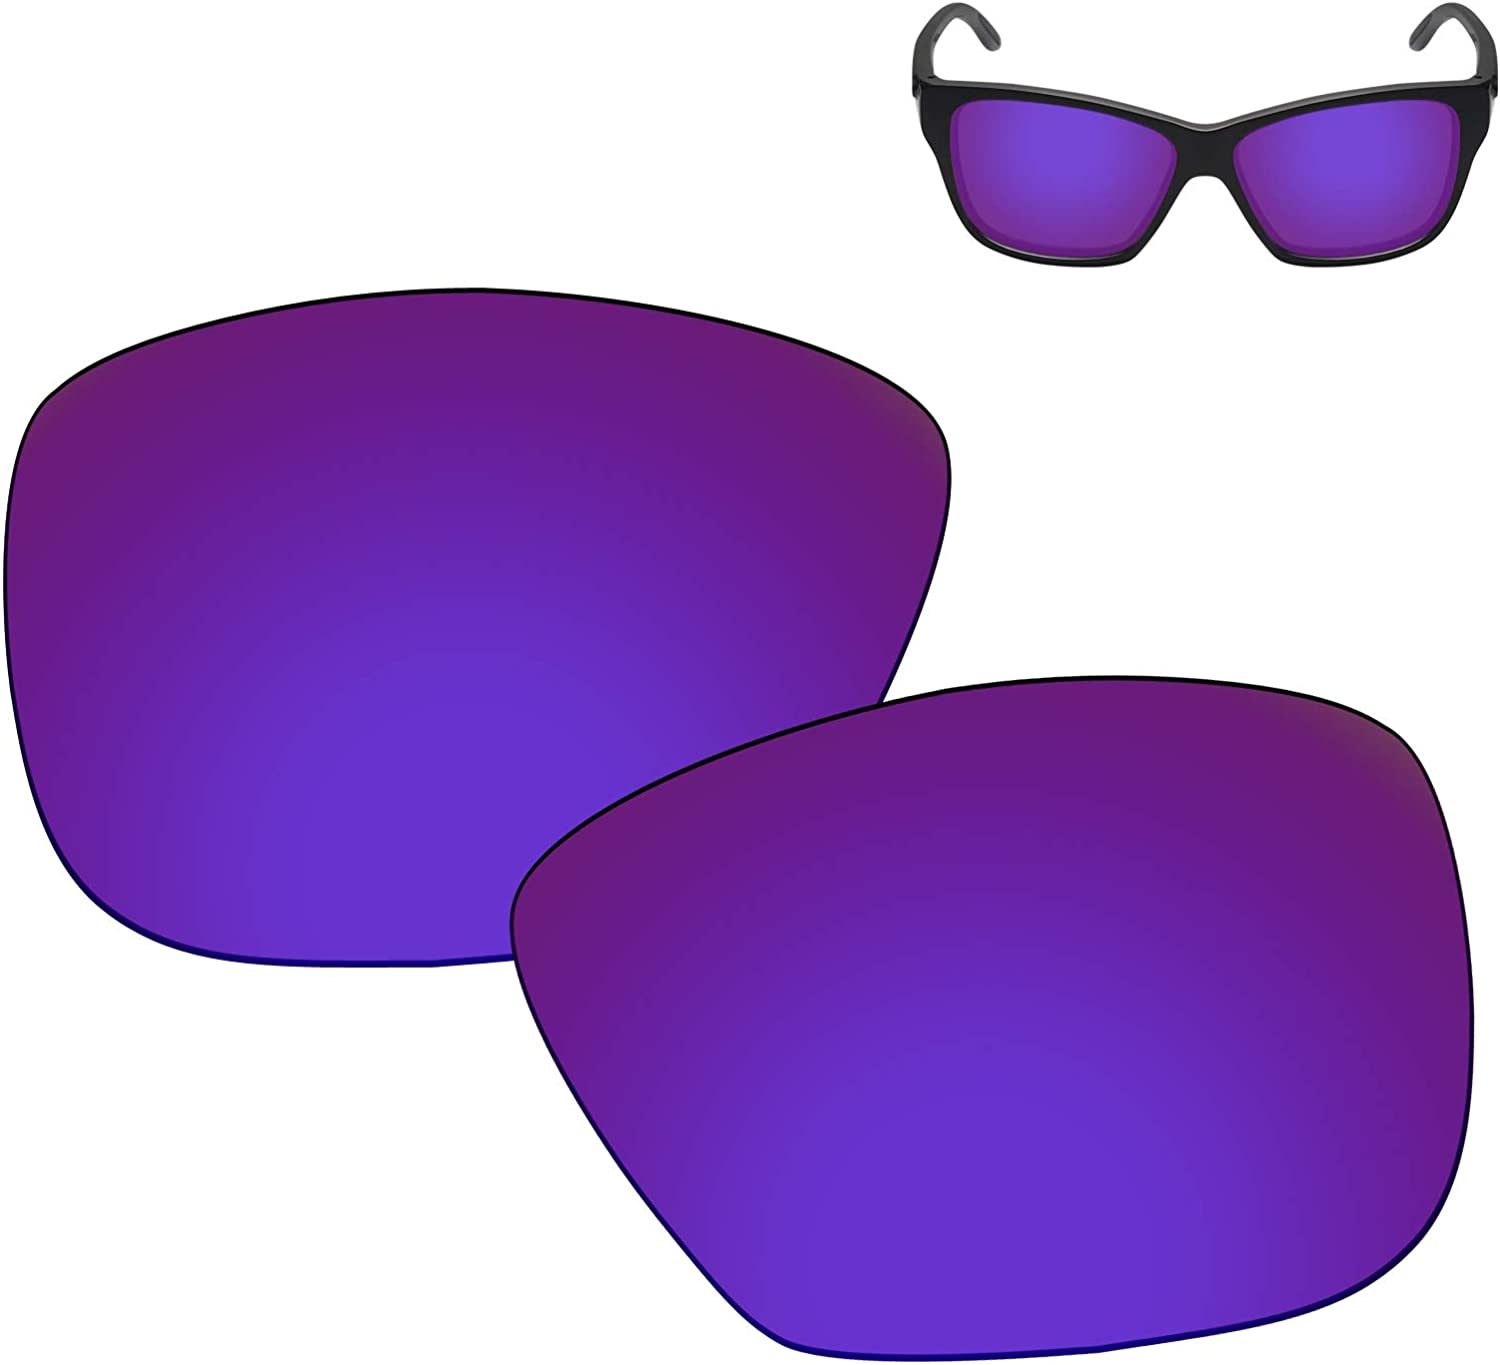 1 year warranty Award Galvanic Replacement Lenses for Oakley - Sunglass OO9298 On Hold